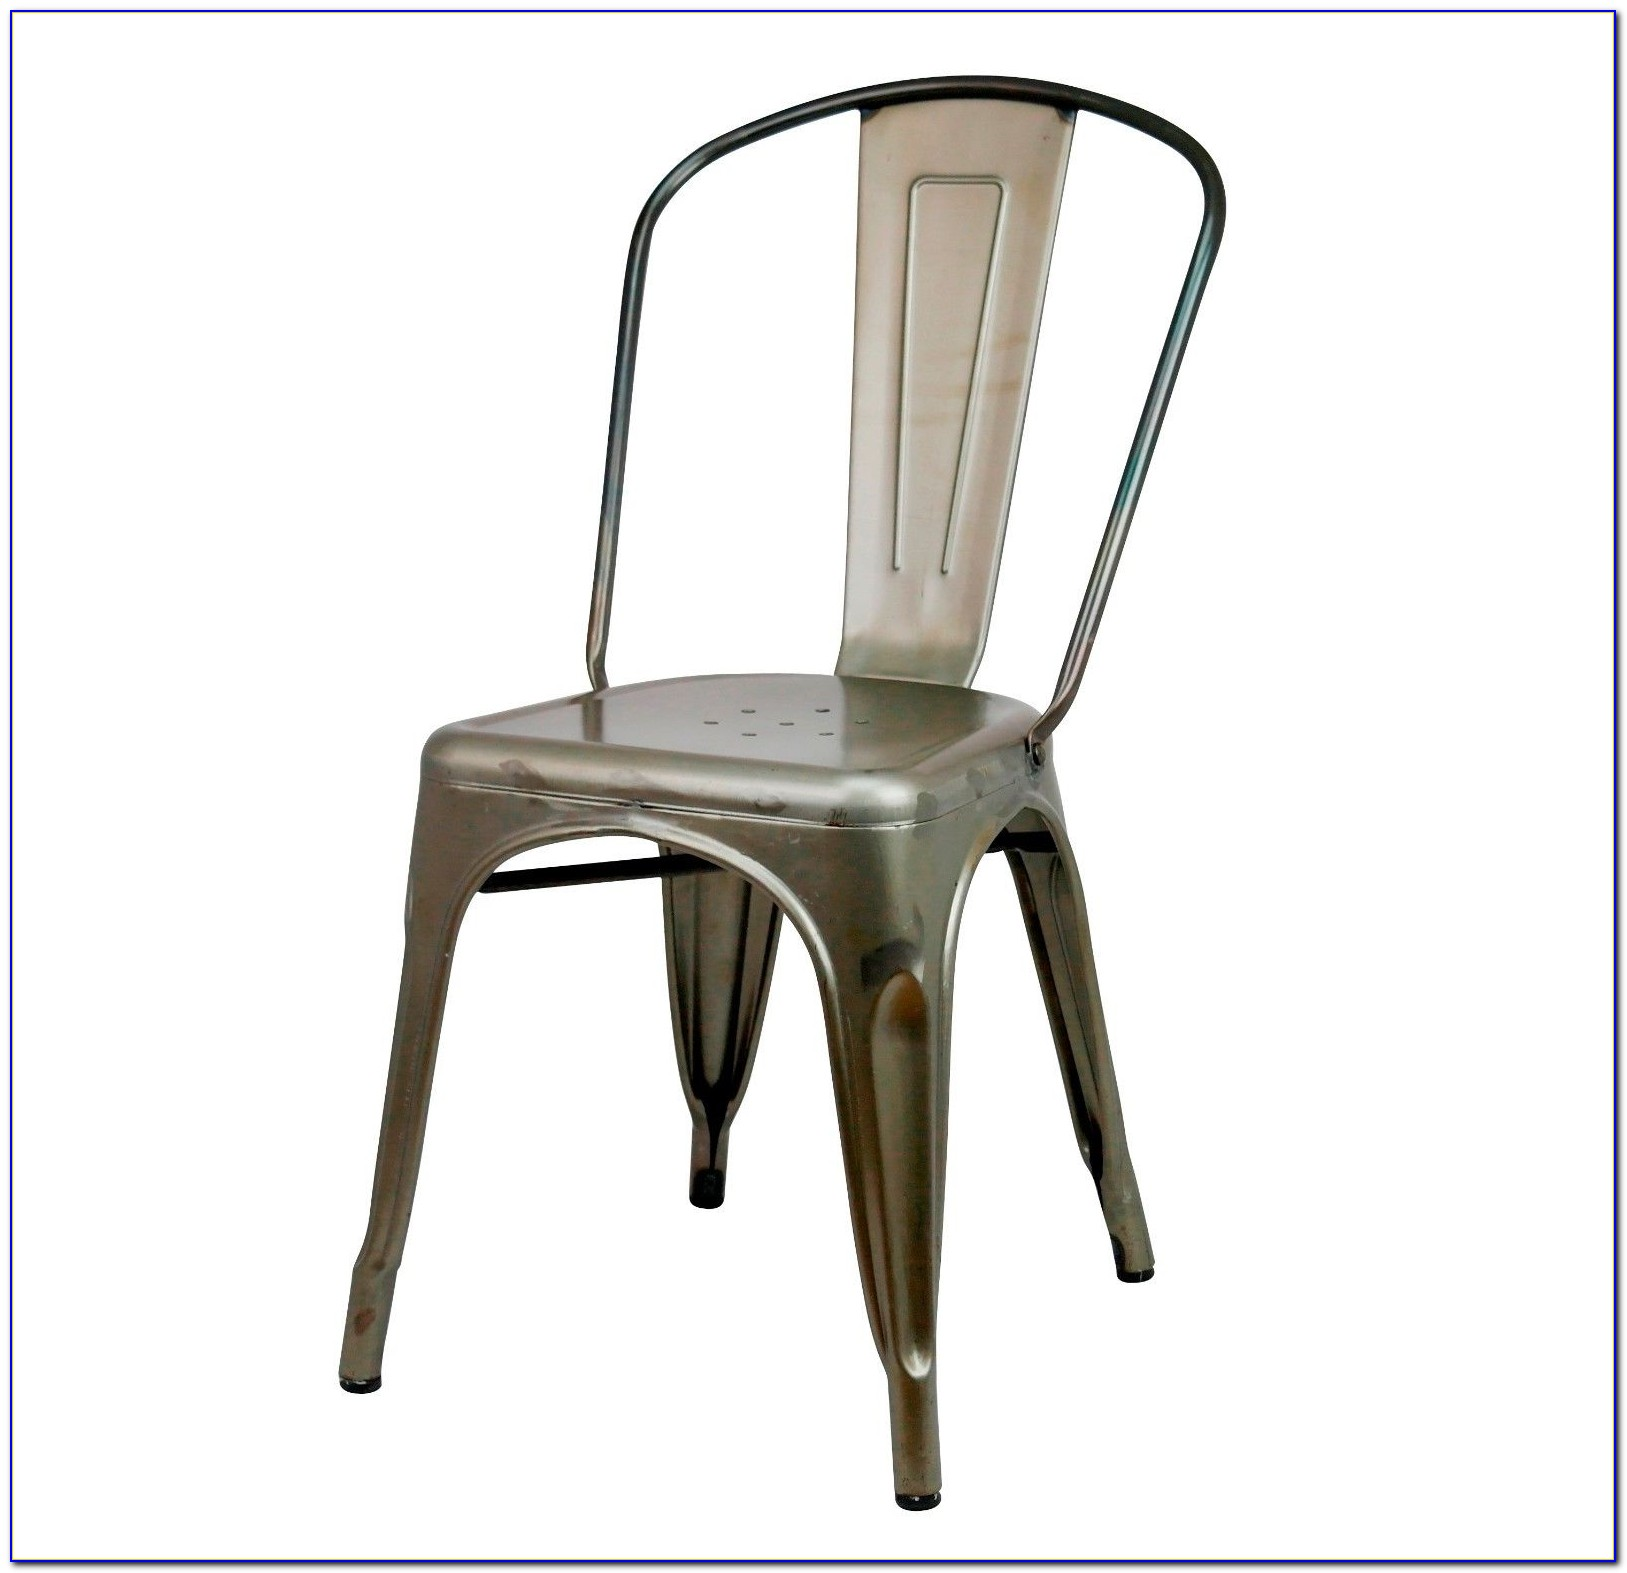 Vintage Industrial Metal Dining Chairs